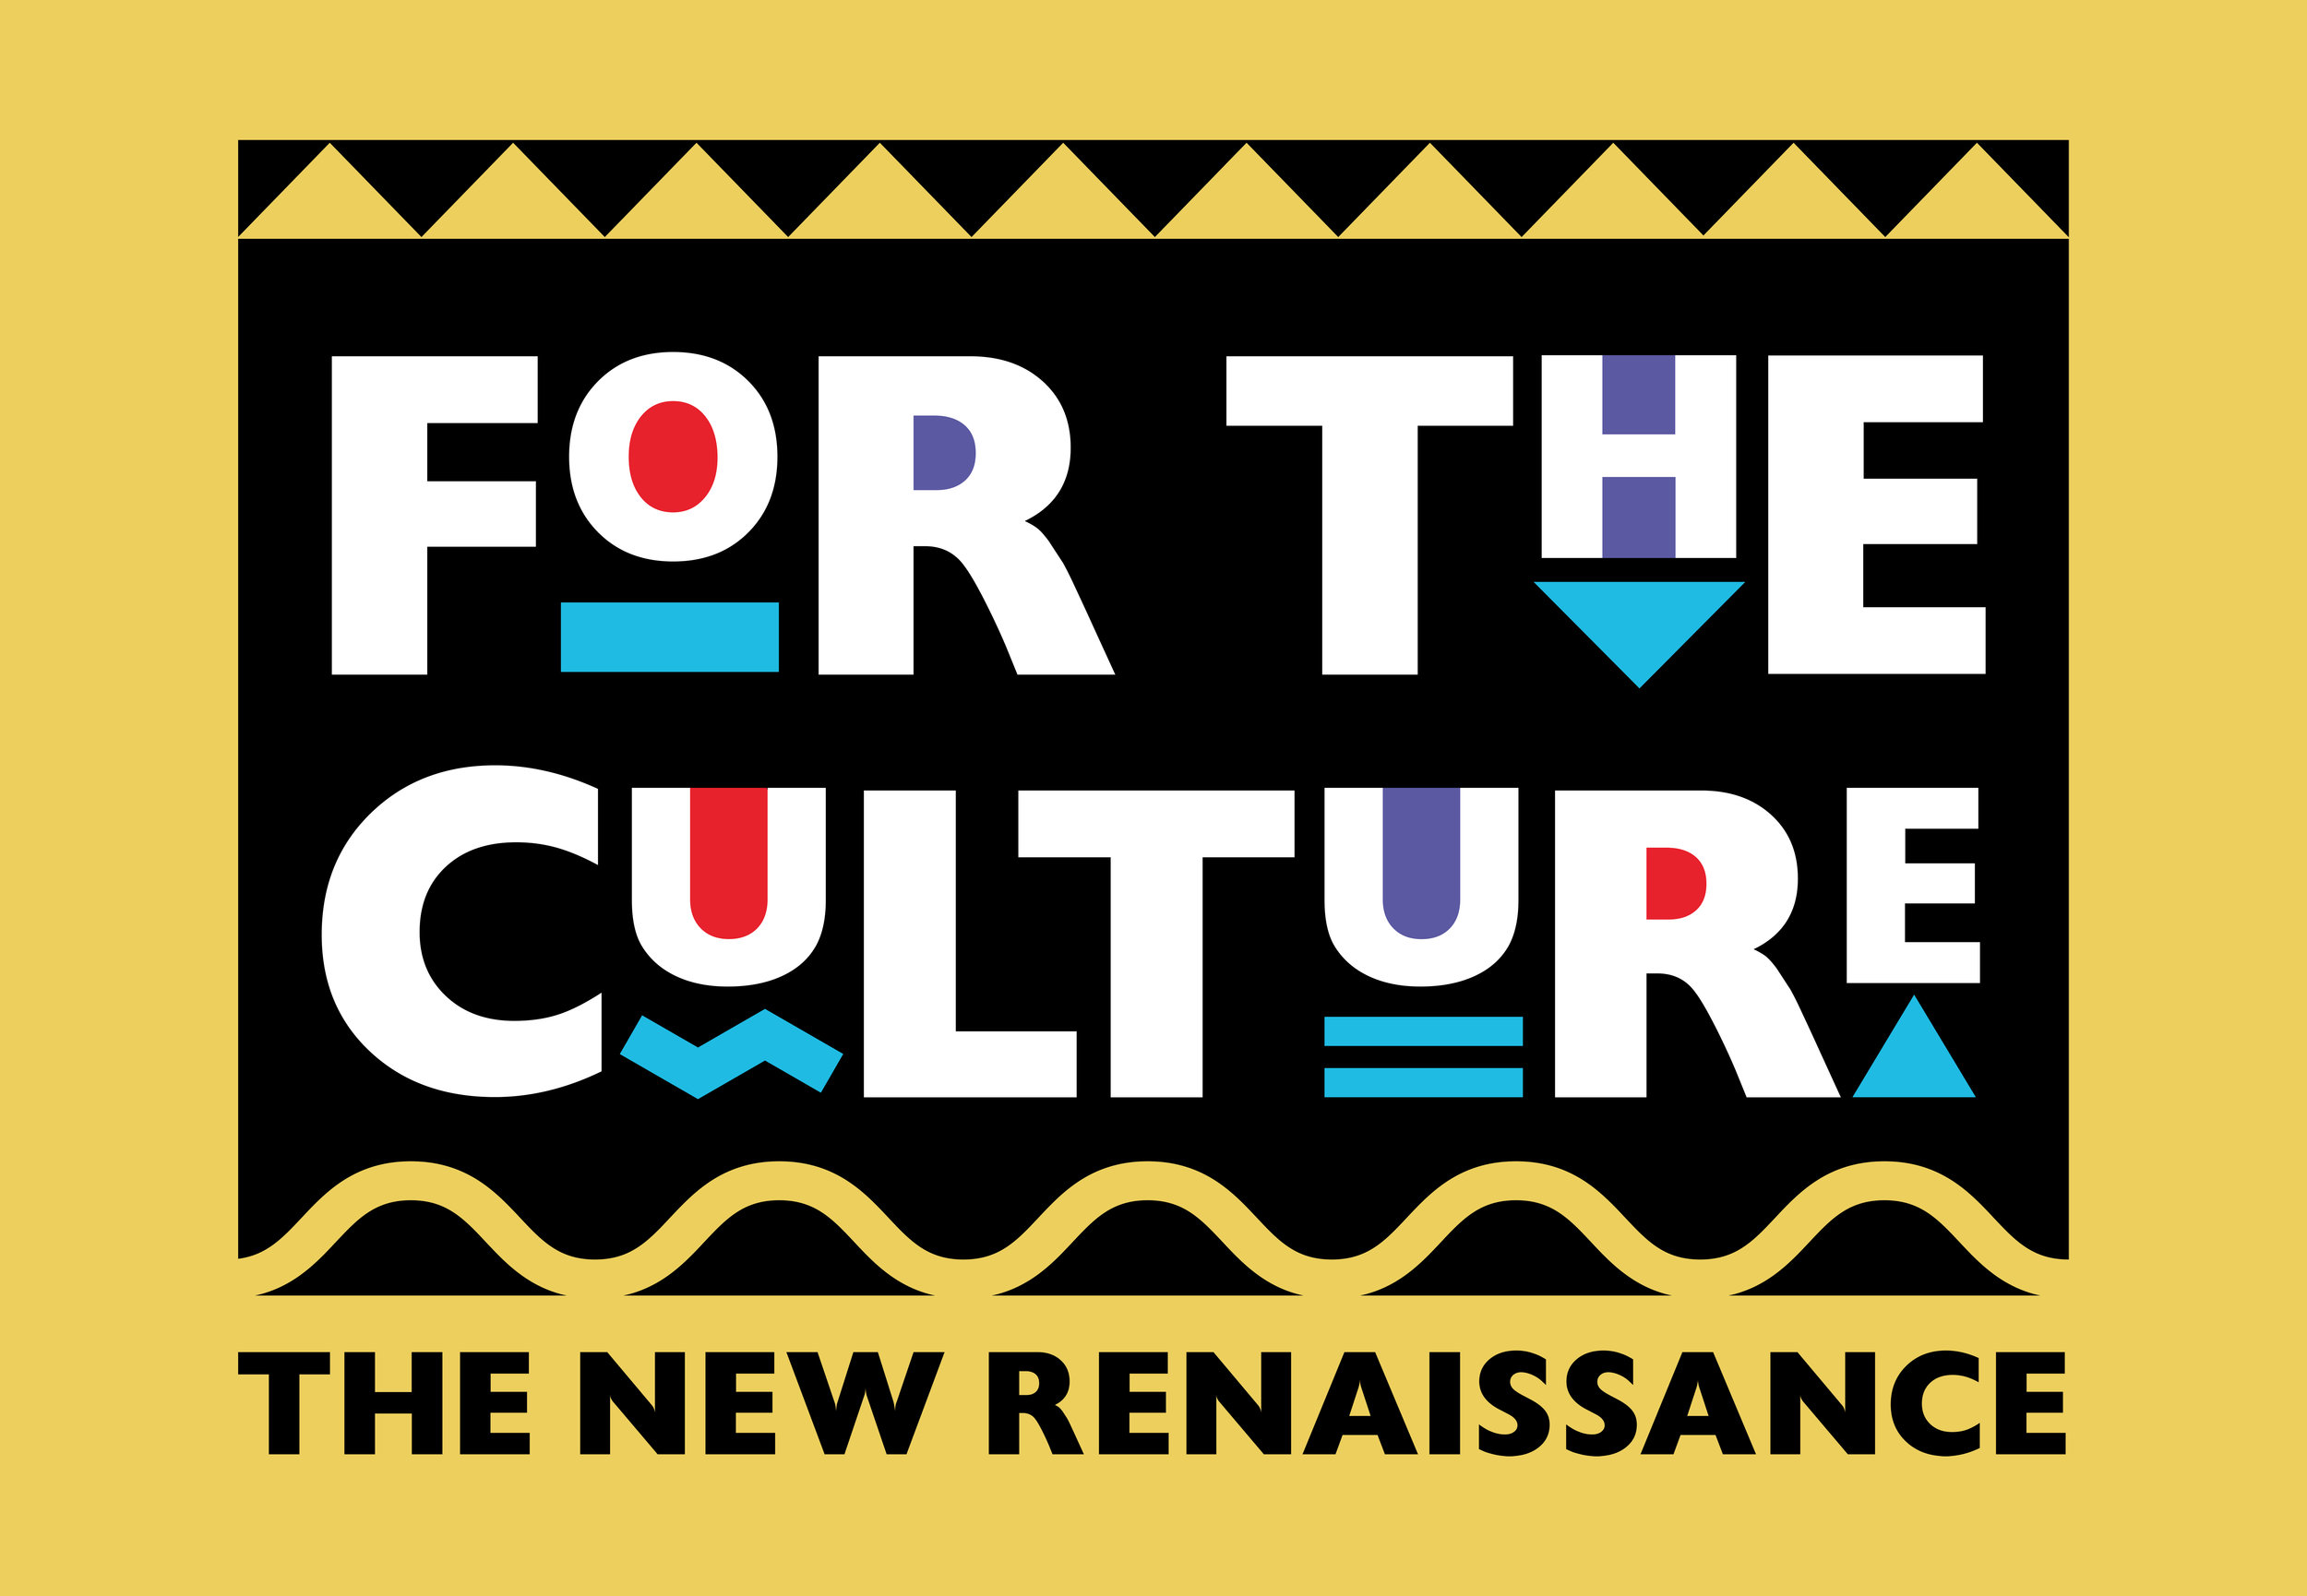 For the Culture (The New Renaissance2).jpg